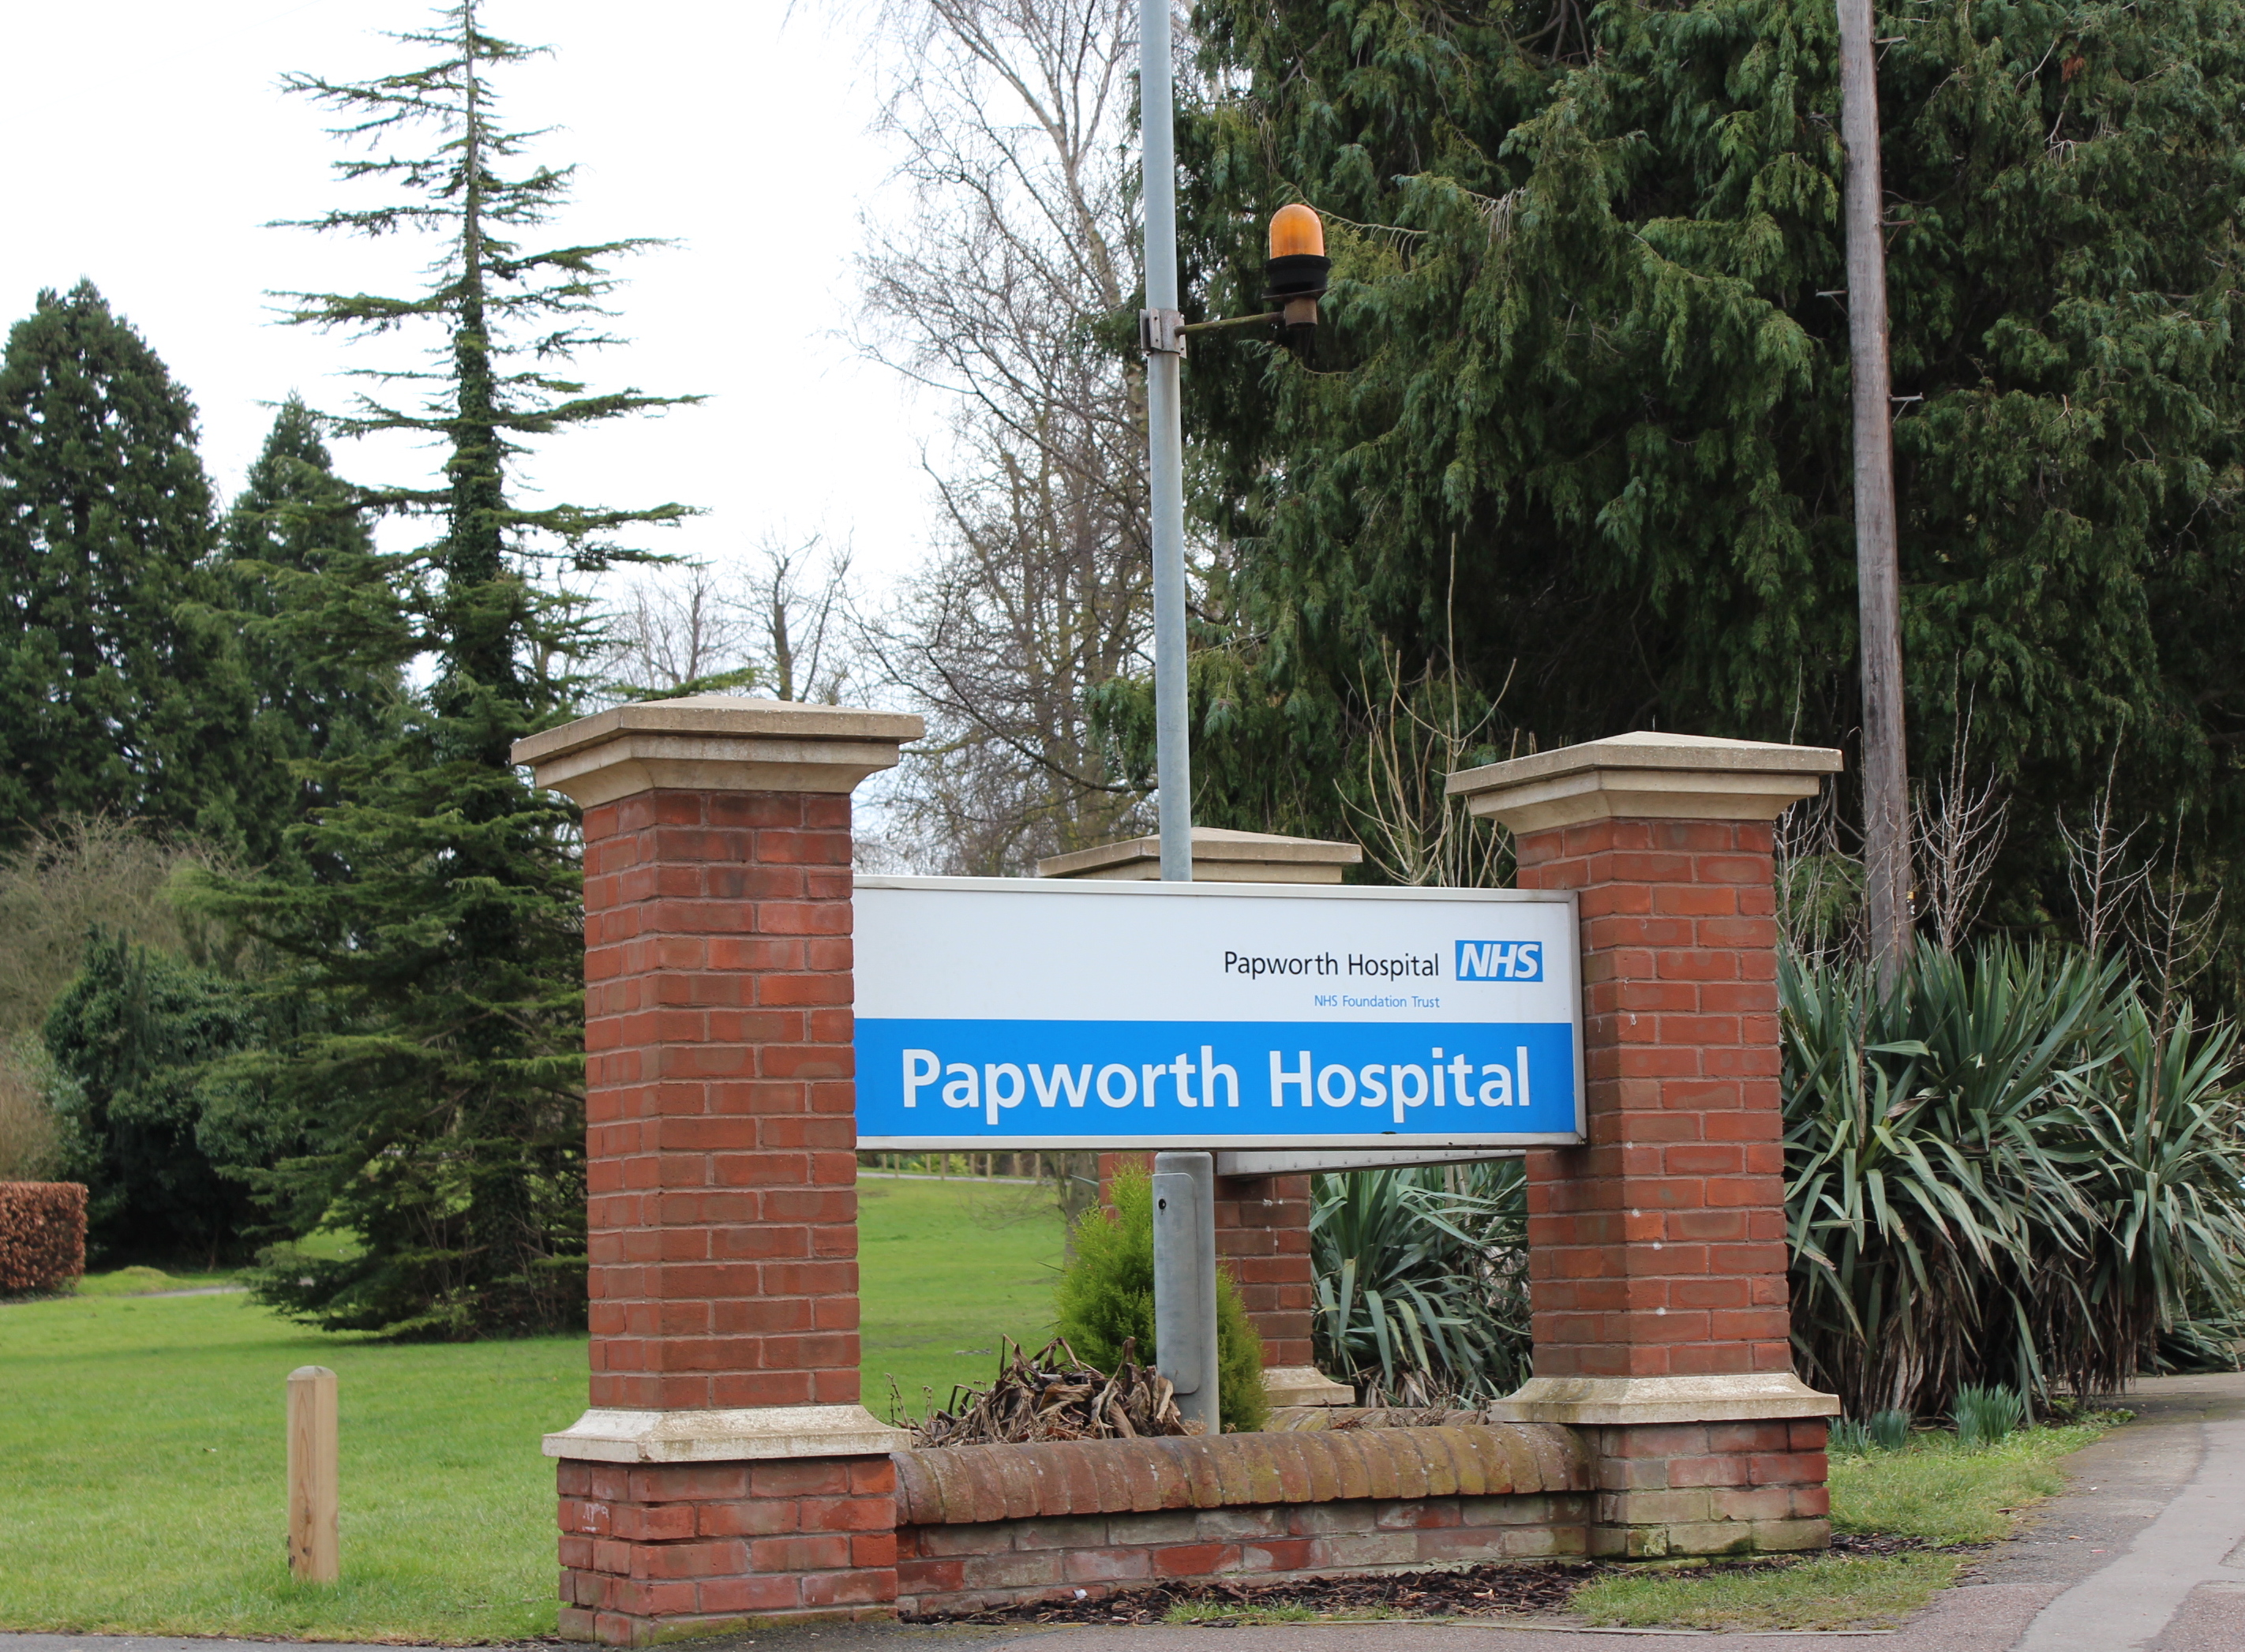 Papworth hospital sign